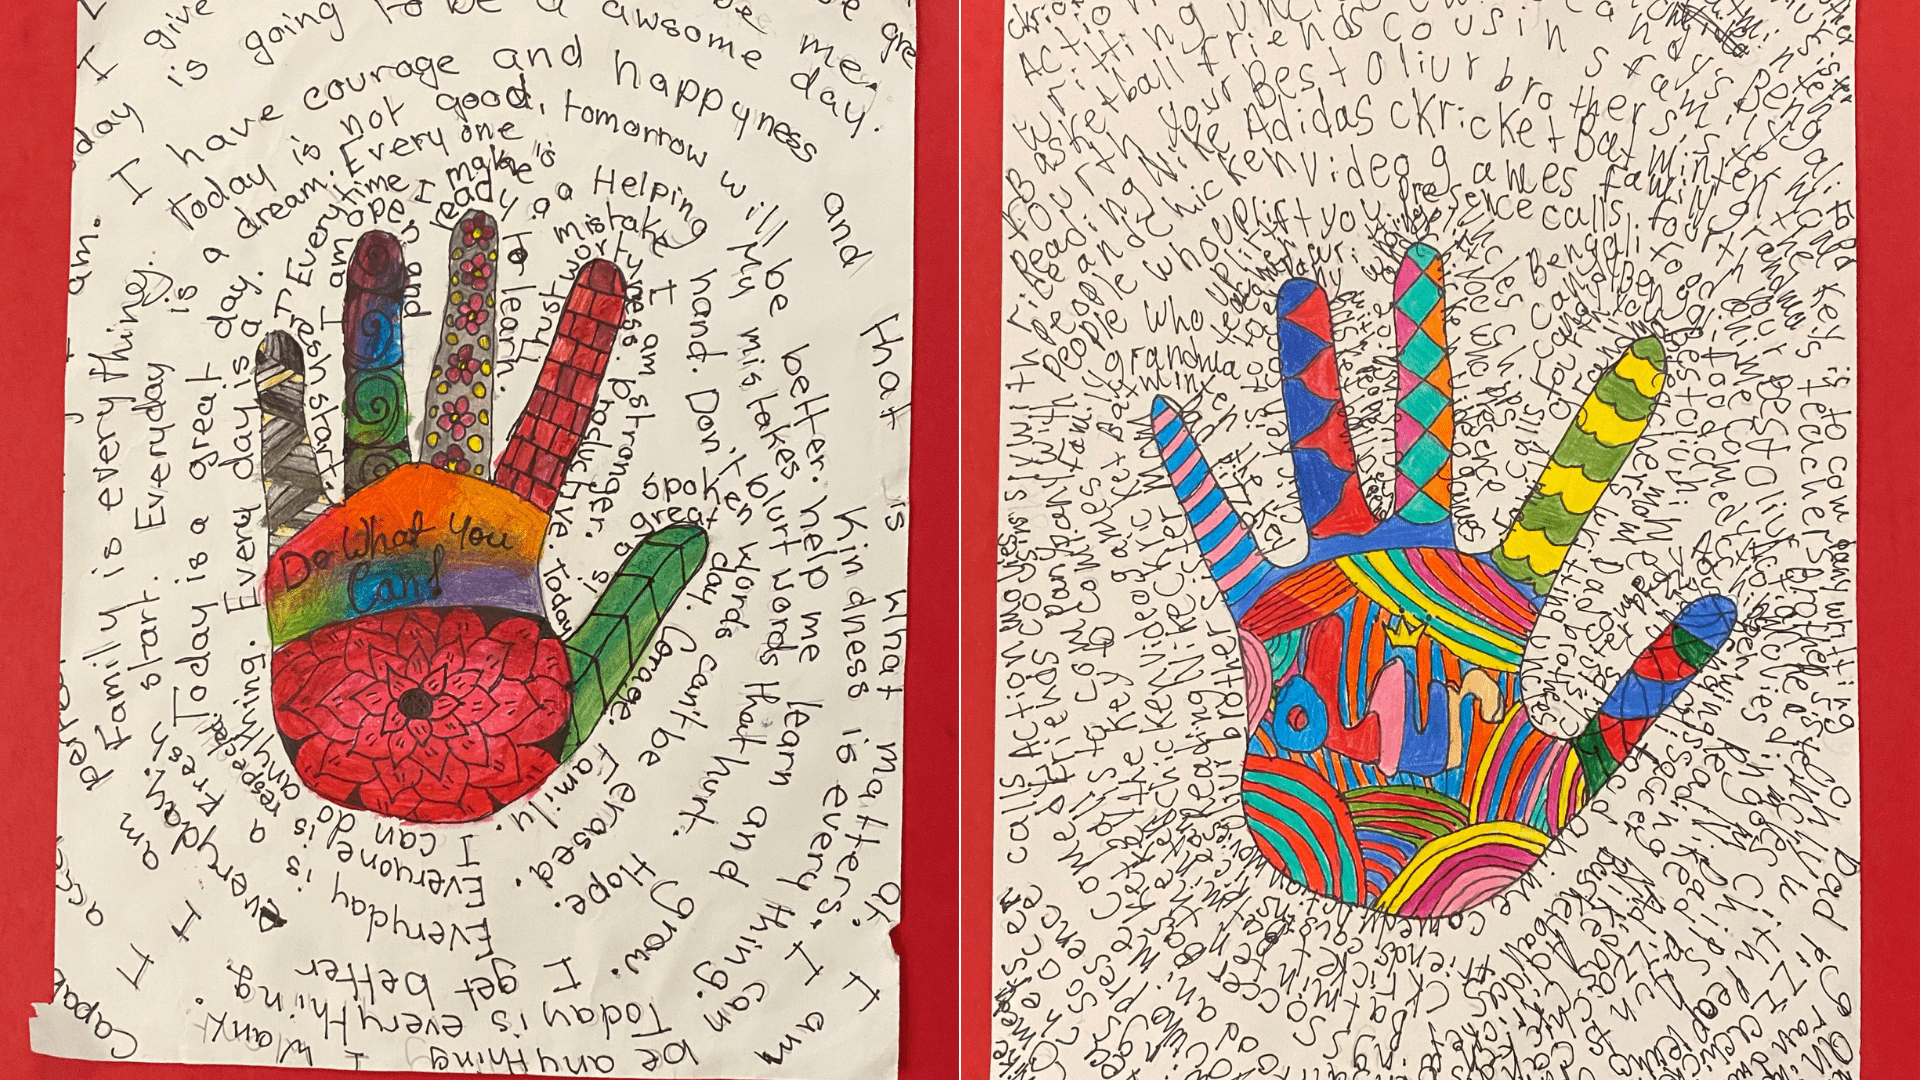 two colorful drawings of hands surrounded by written text